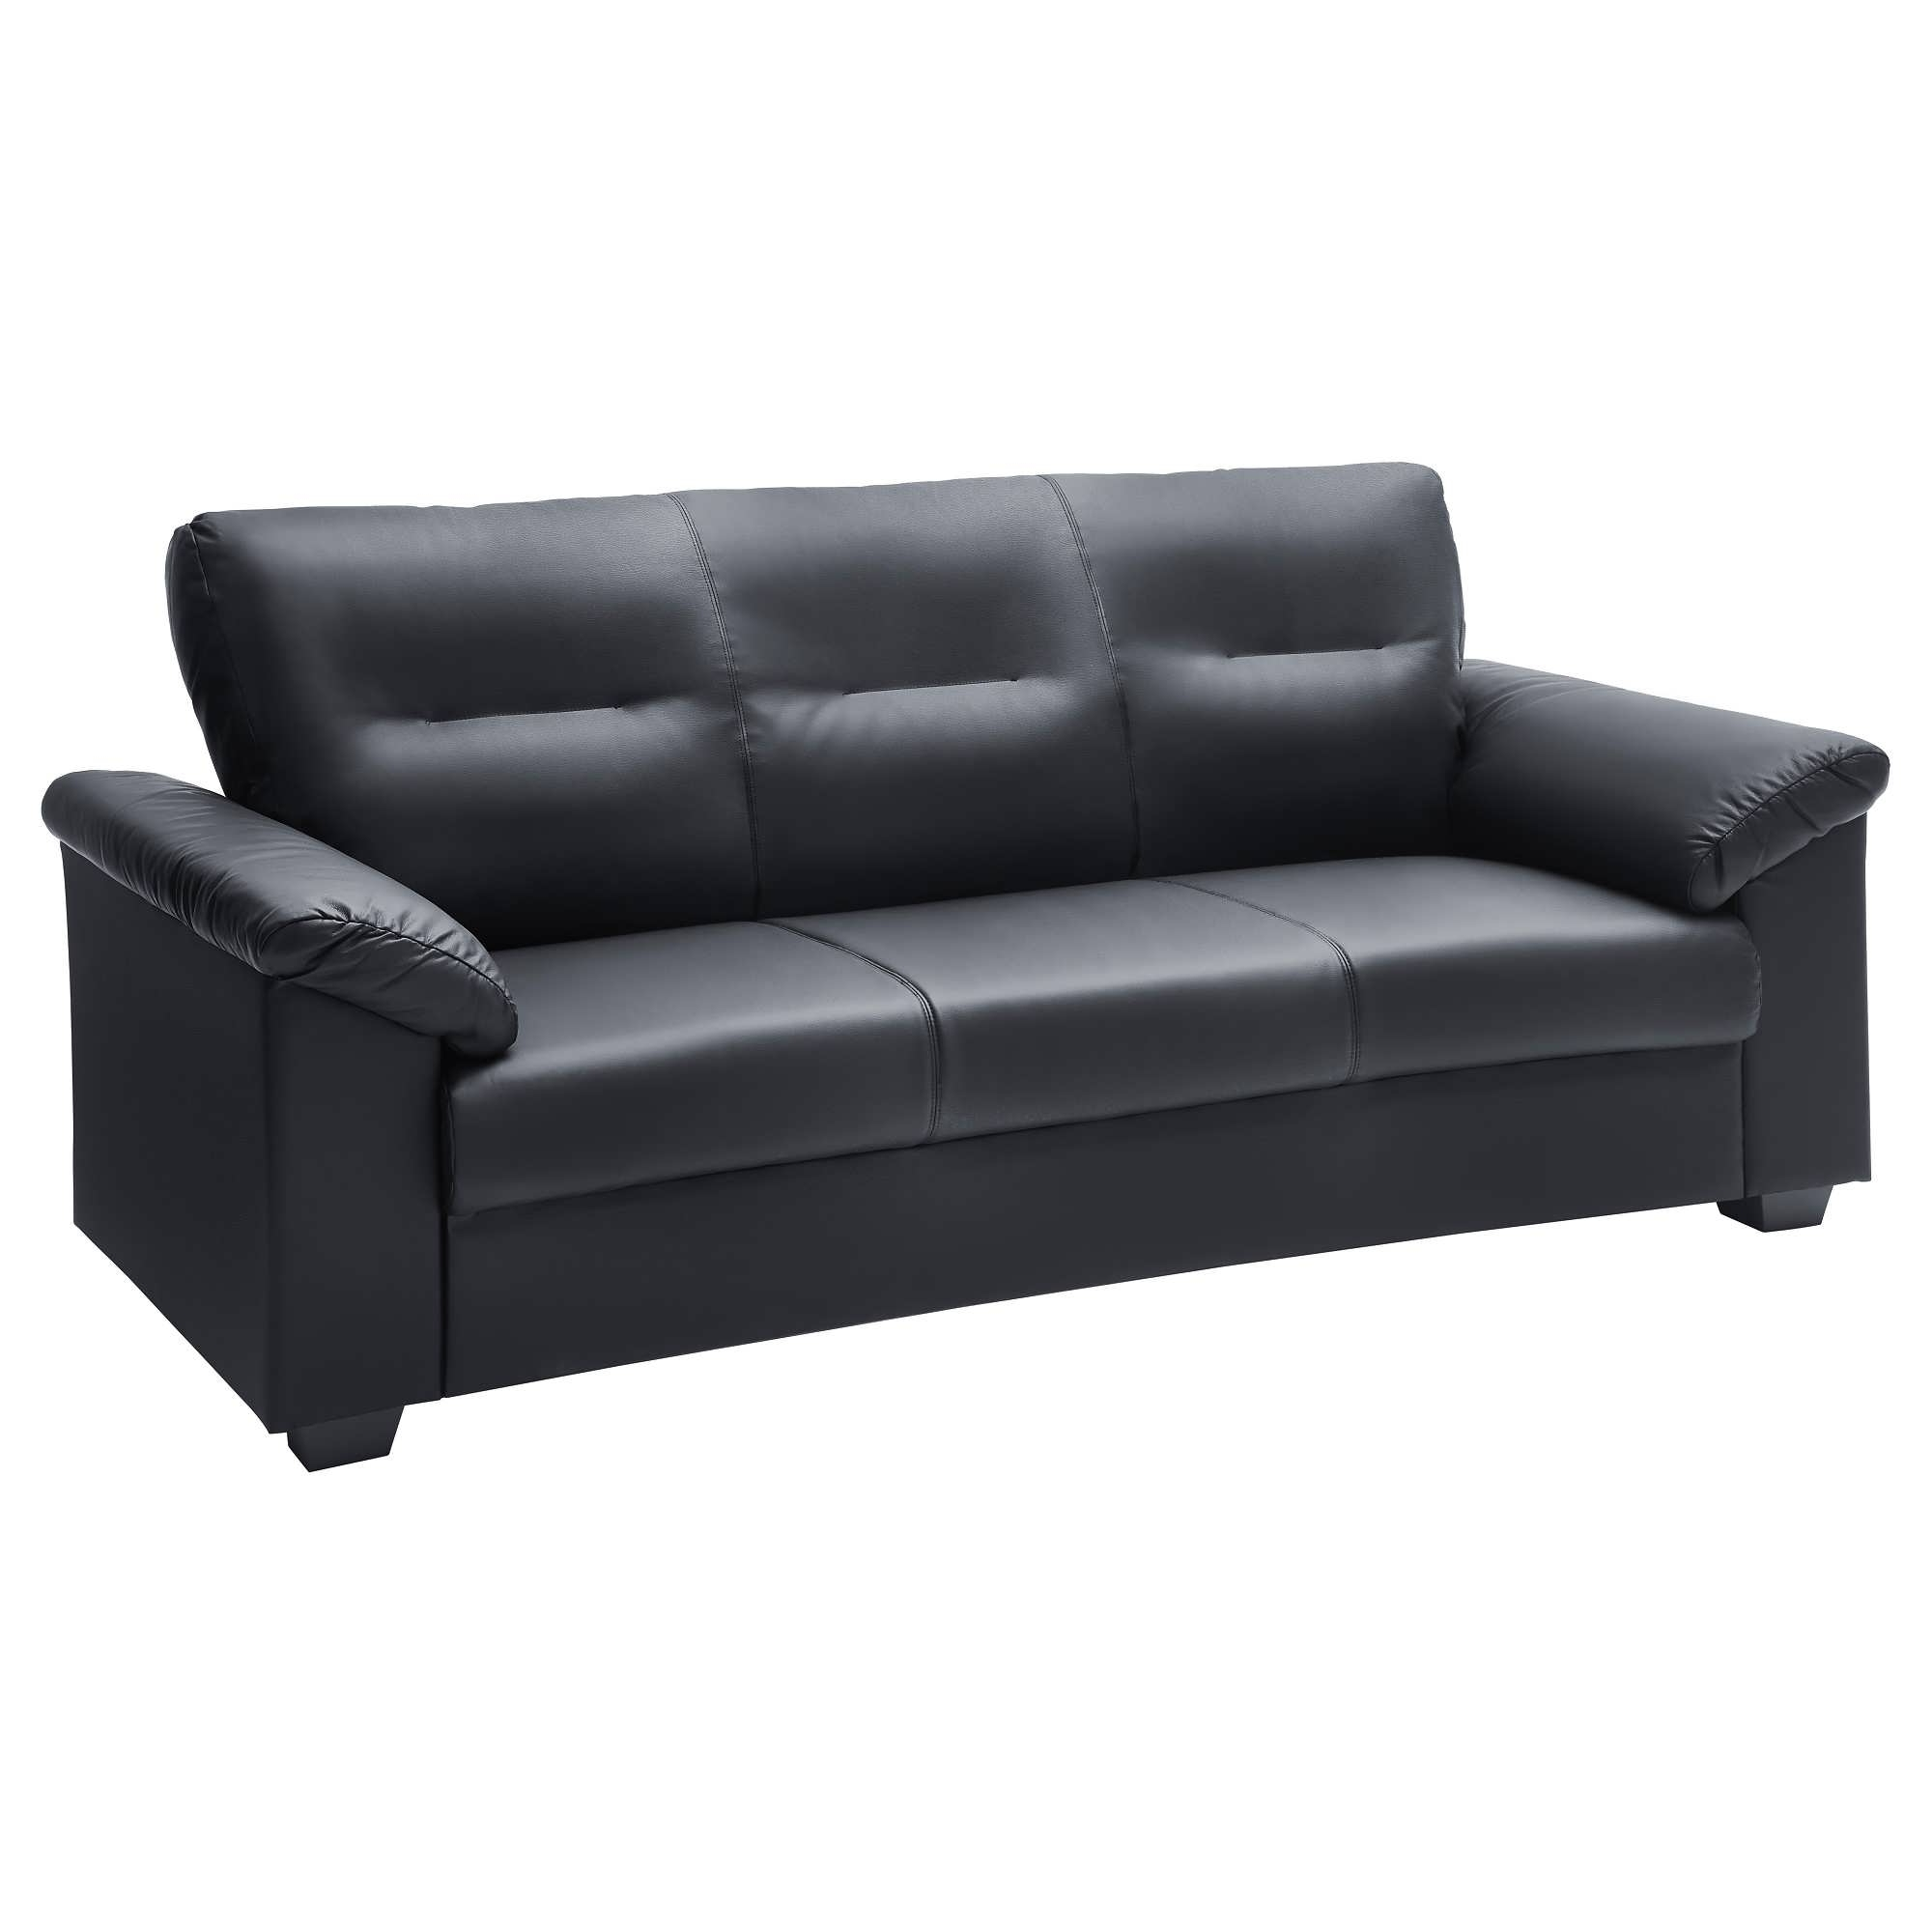 Sofa : Modular Sectional Leather Chaise Sofa Contemporary Pertaining To Latest Small Chaise Sofas (View 10 of 15)